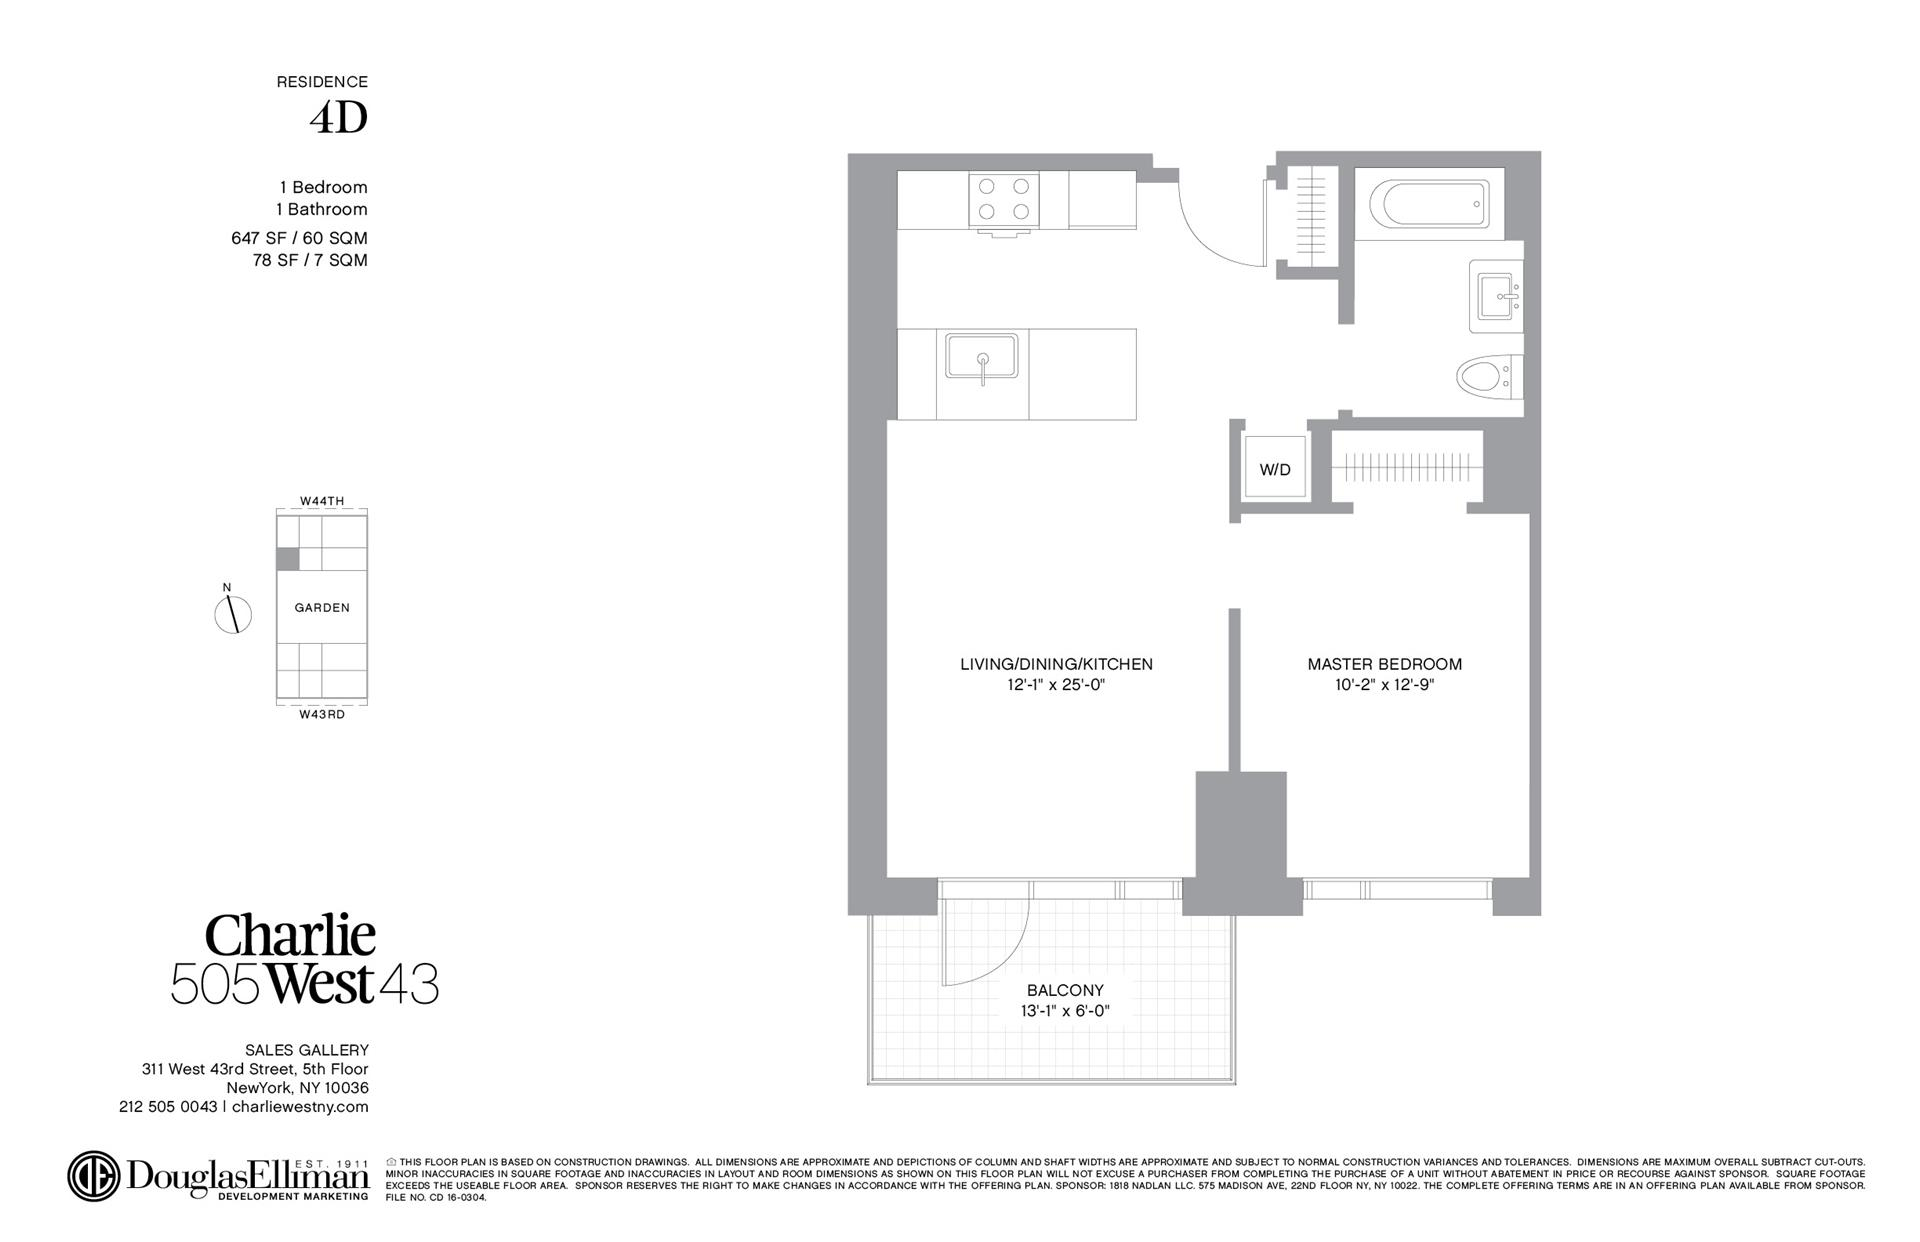 Floor plan of 505 West 43rd St, 4D - Clinton, New York